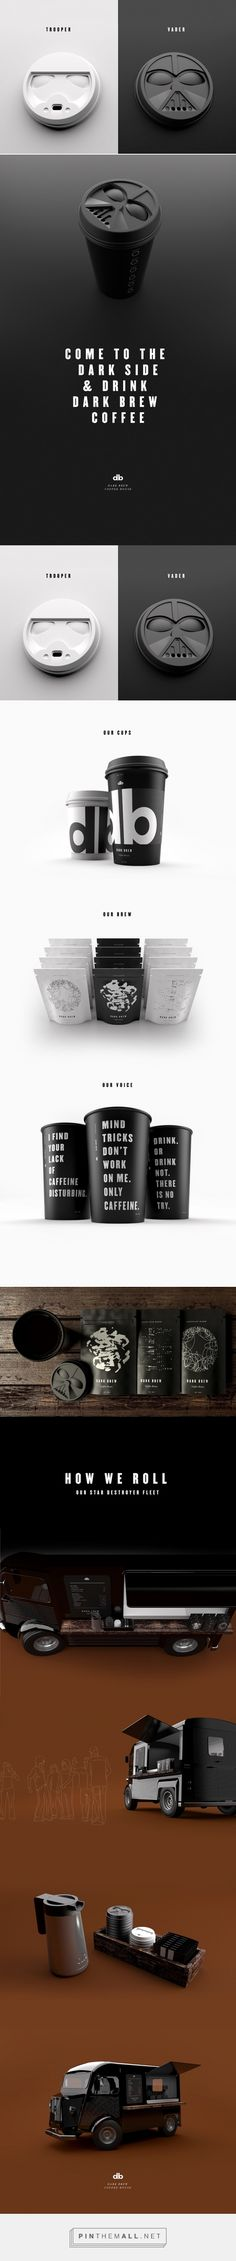 Example of creative concept design – Dark Brew Coffee House - star wars trooper vader concept by Spencer Davis & Scott Schenone Packaging Box, Coffee Packaging, Coffee Branding, Brand Packaging, Packaging Design, Logo Design, Identity Design, Star Wars Trooper, Corporate Design